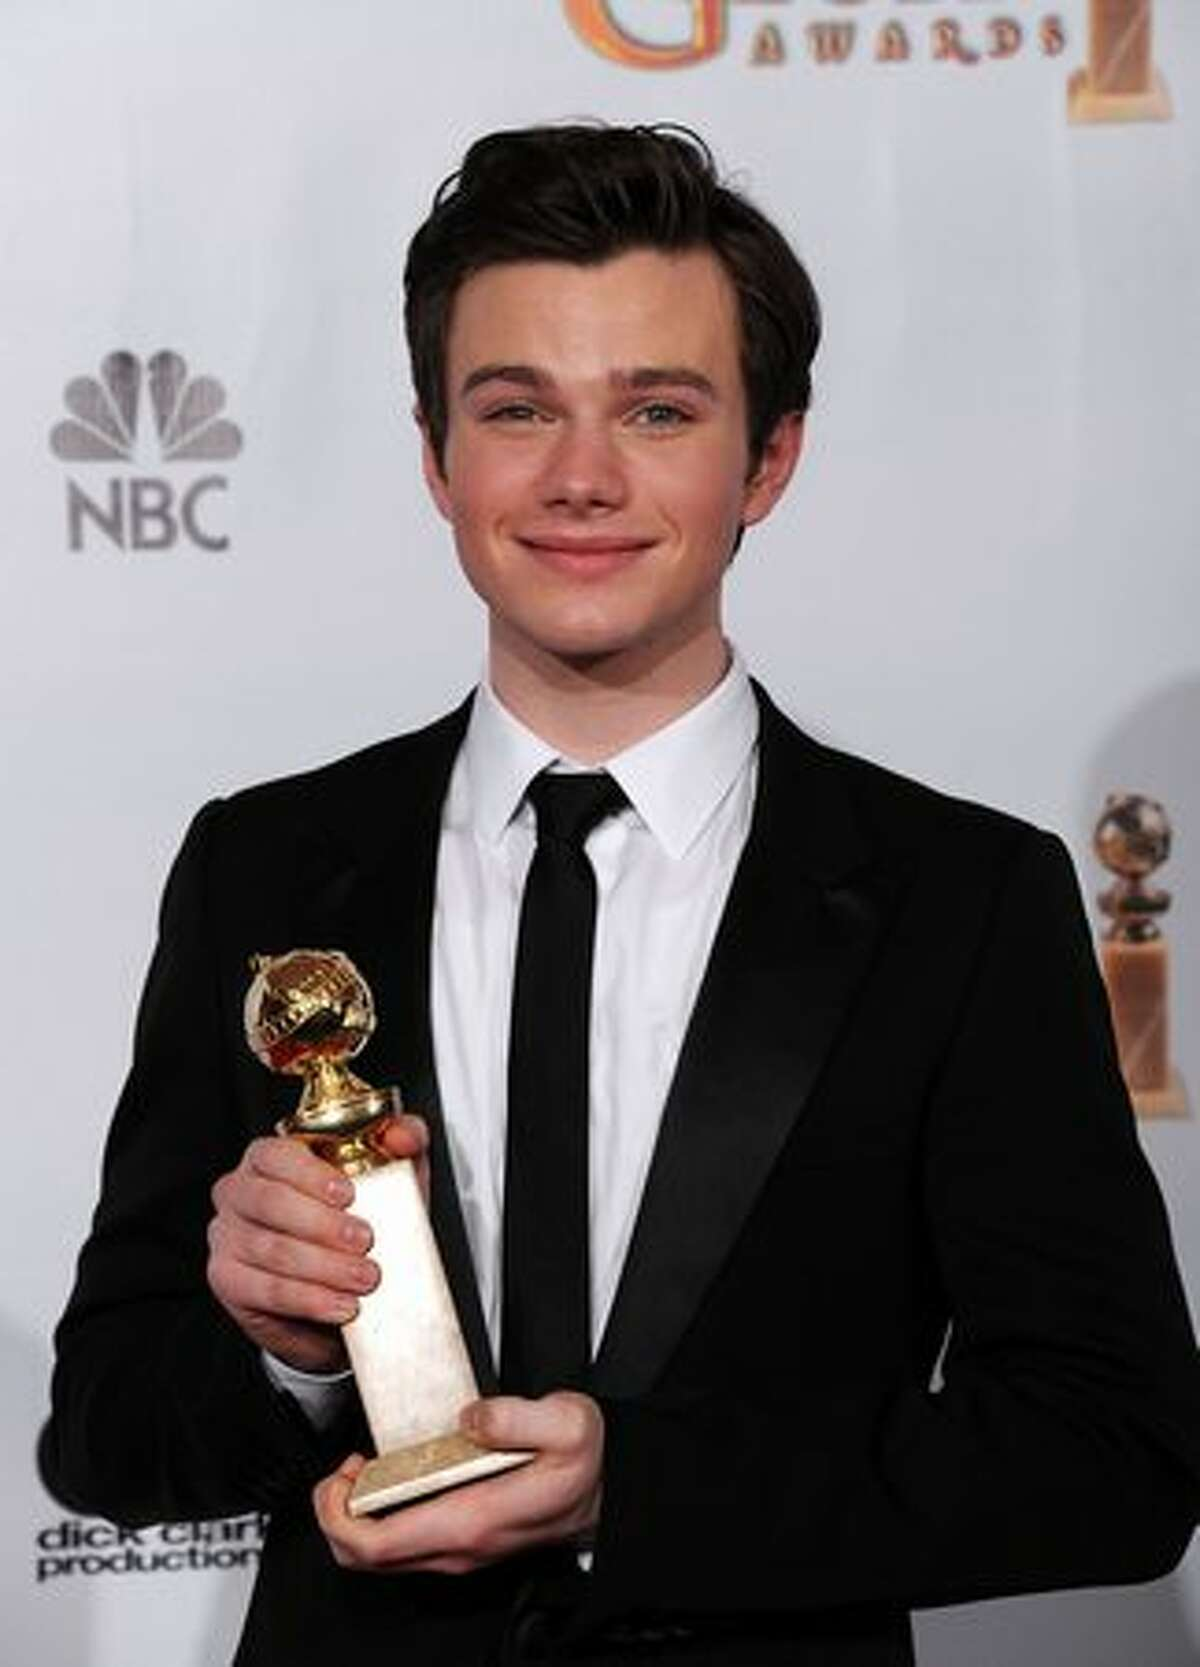 Actor Chris Colfer poses with his award for Best Performance by an Actor in a Supporting Role in a Series, Mini-Series or Motion Picture Made for Television for